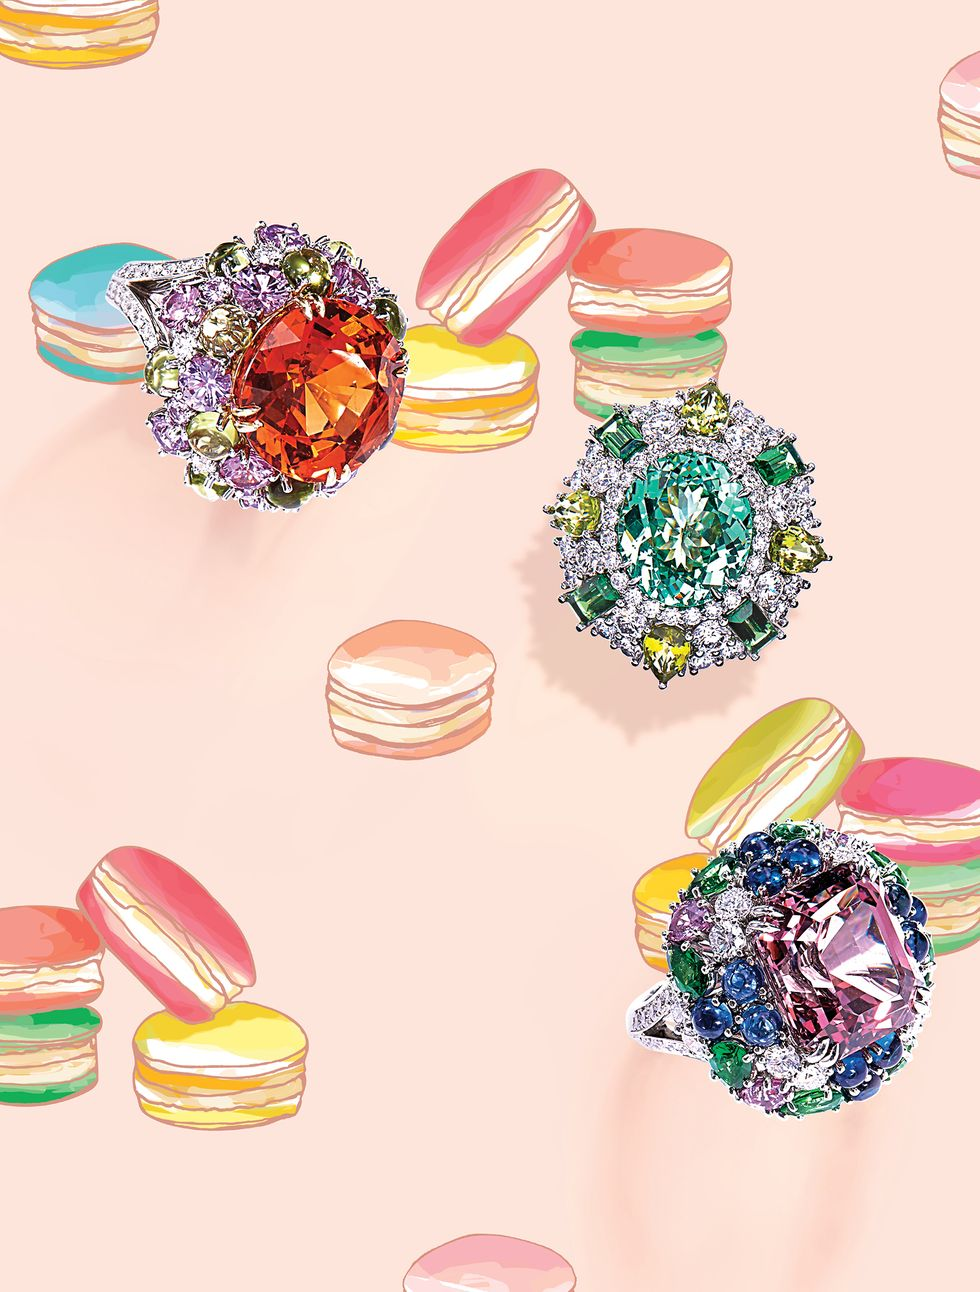 Harry Winston's Latest Jewelry Collection Will Give You a Sugar High!